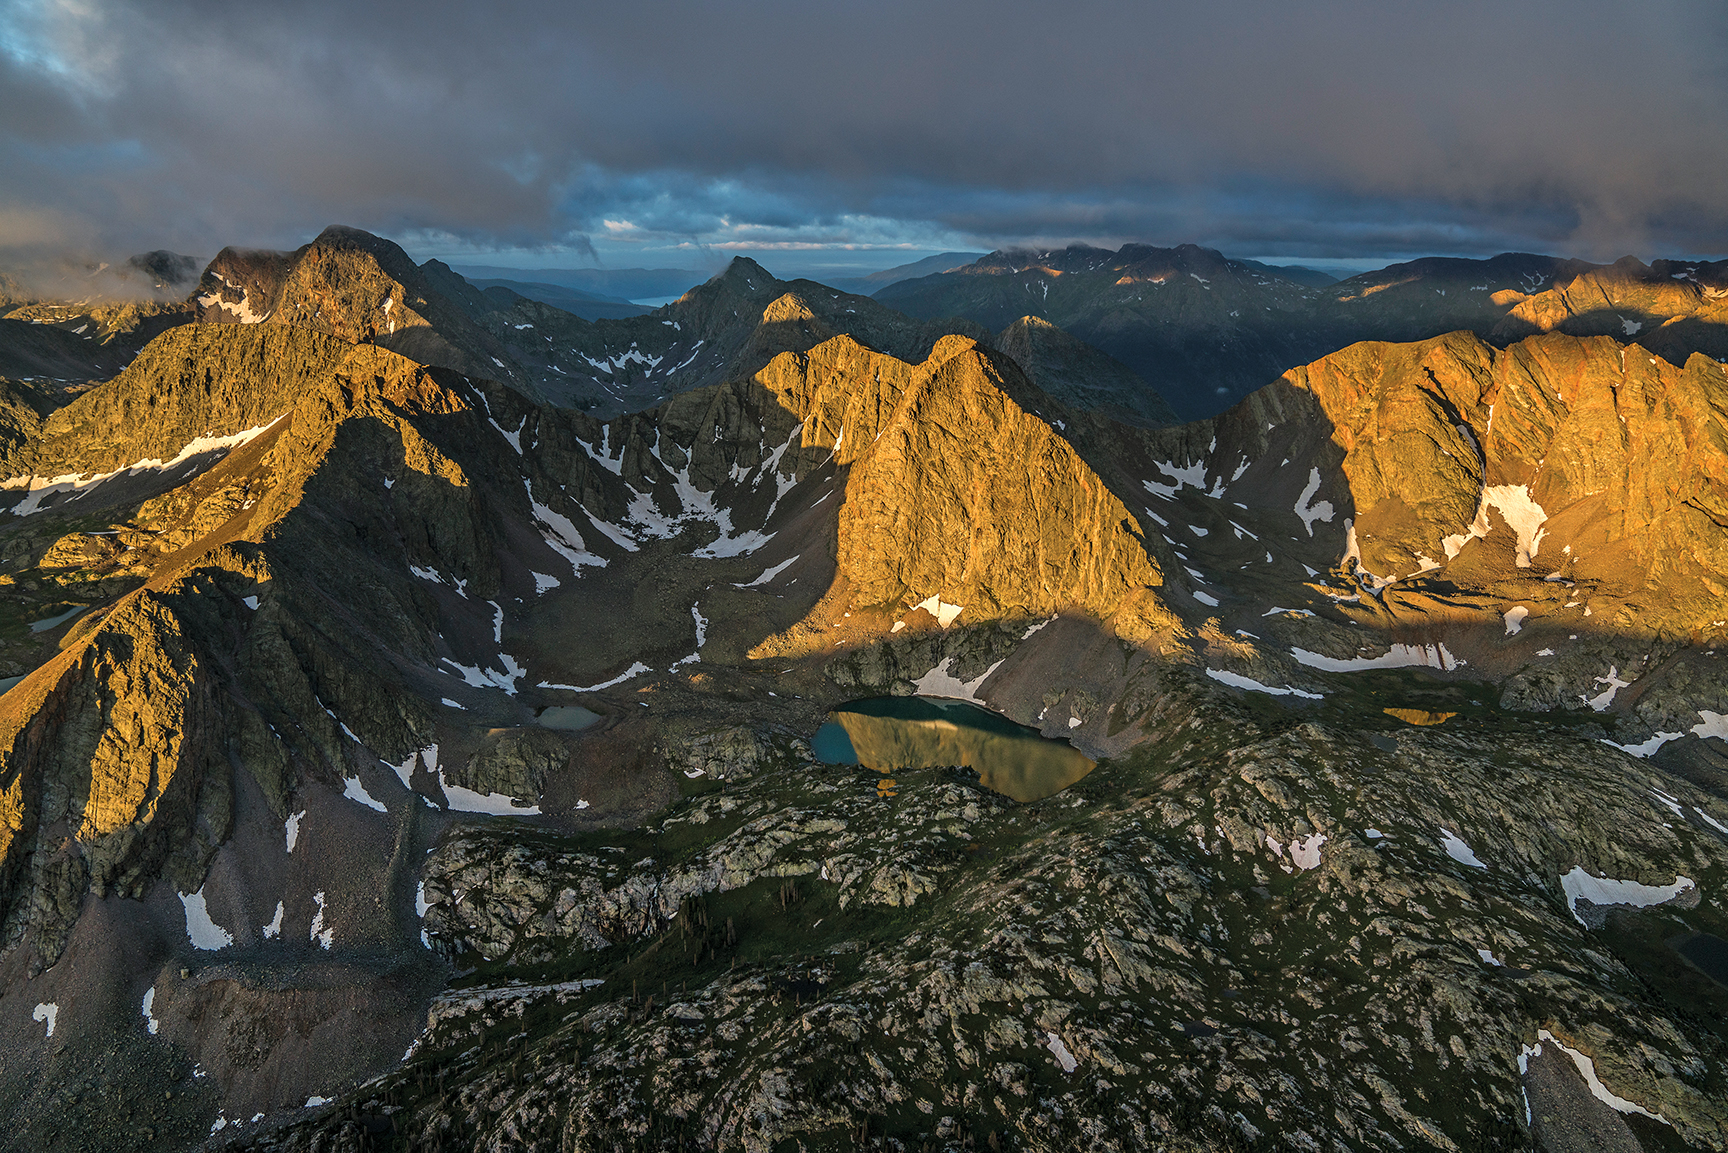 Terrain near the Continental Divide, Weminuche Wilderness, Colorado. Photo by Chris Dahl-Bredine